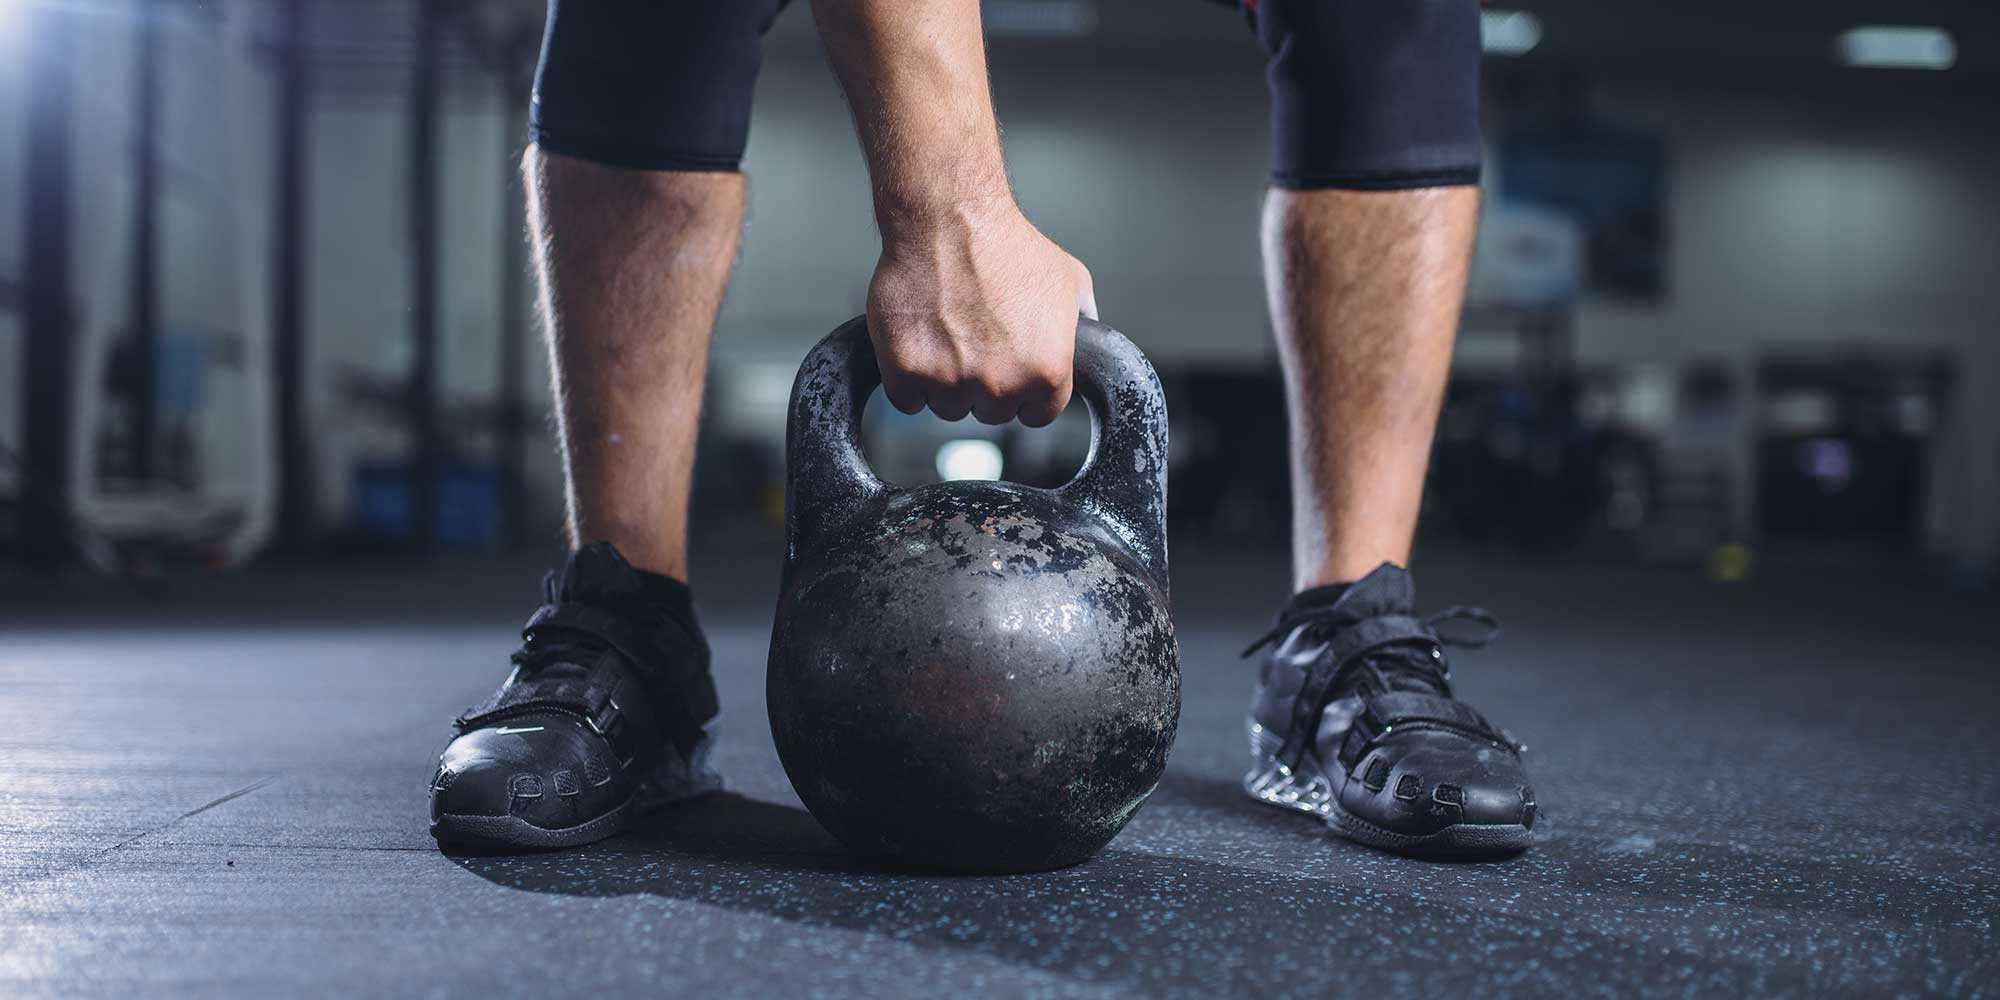 The great Benefits of incorporating suitcase deadlifts